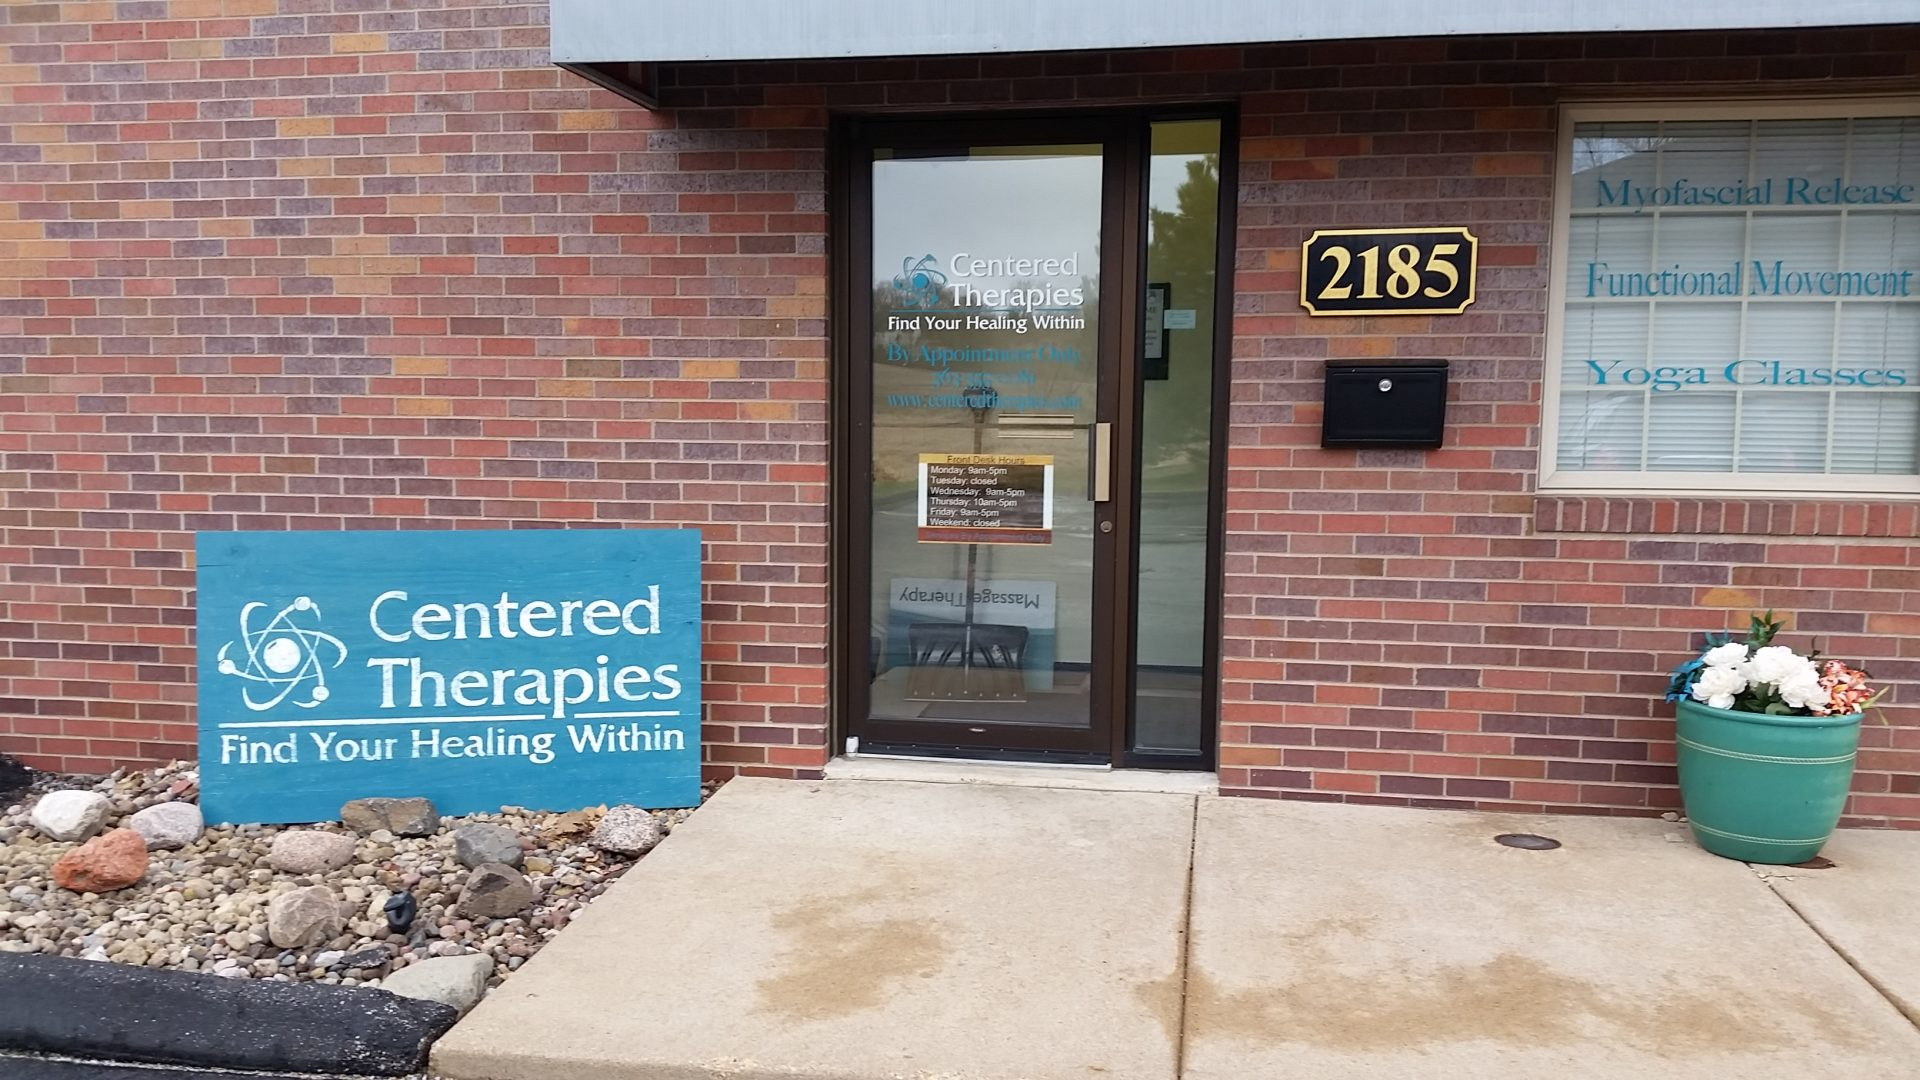 Centered Therapies